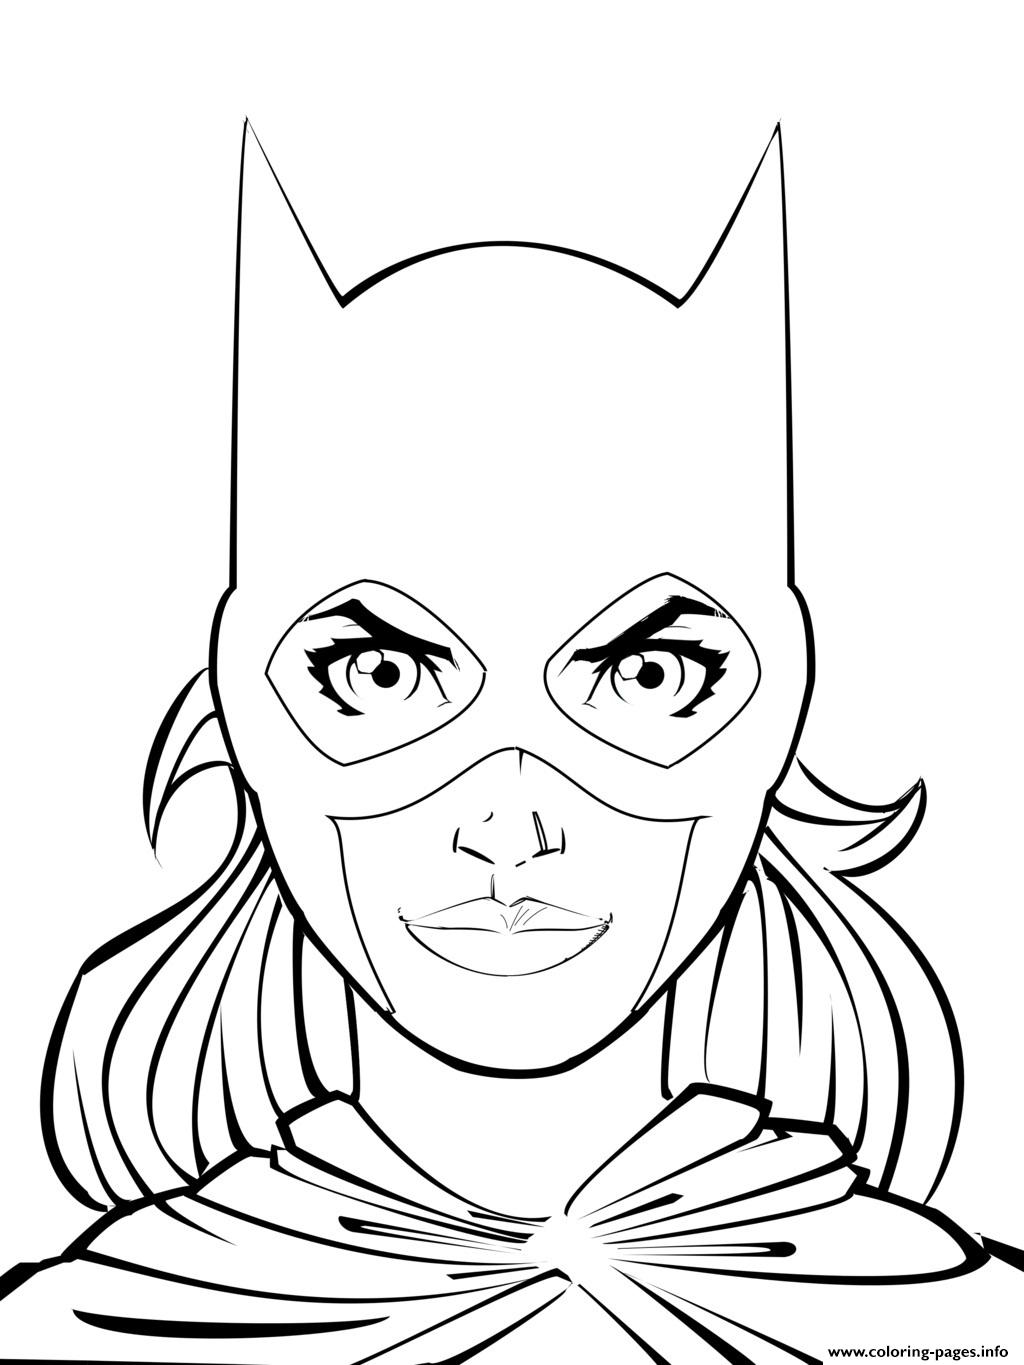 Supergirl Batgirl Coloring Pages Printable Batgirl And Supergirl Coloring Pages Printable